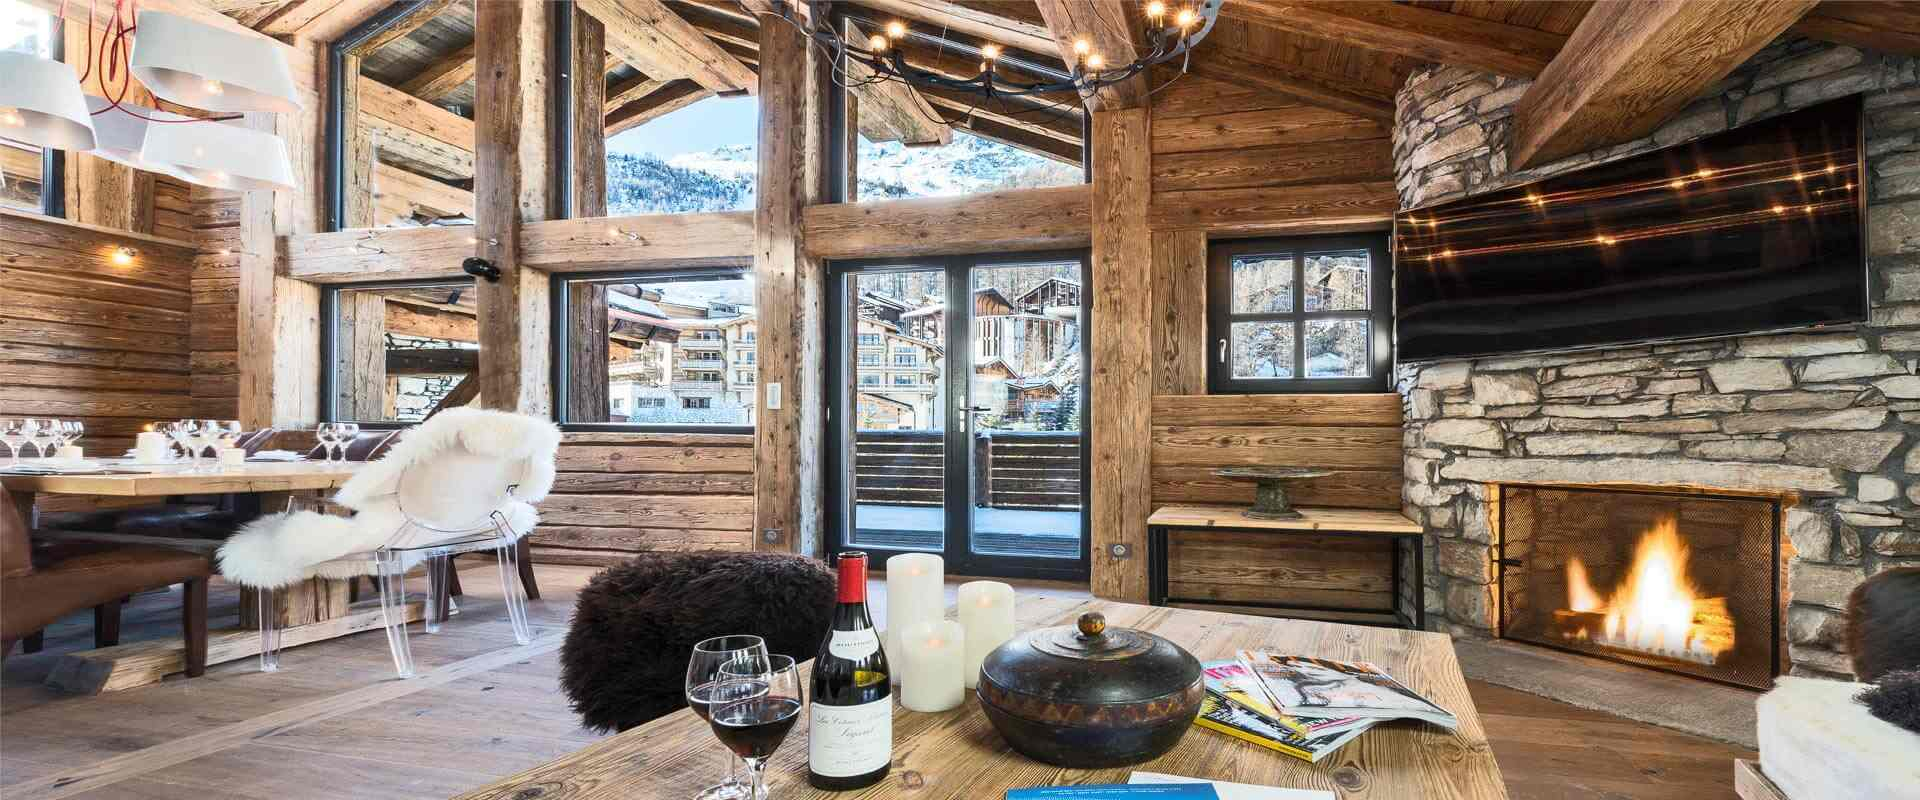 location chalet alpes val d'isere